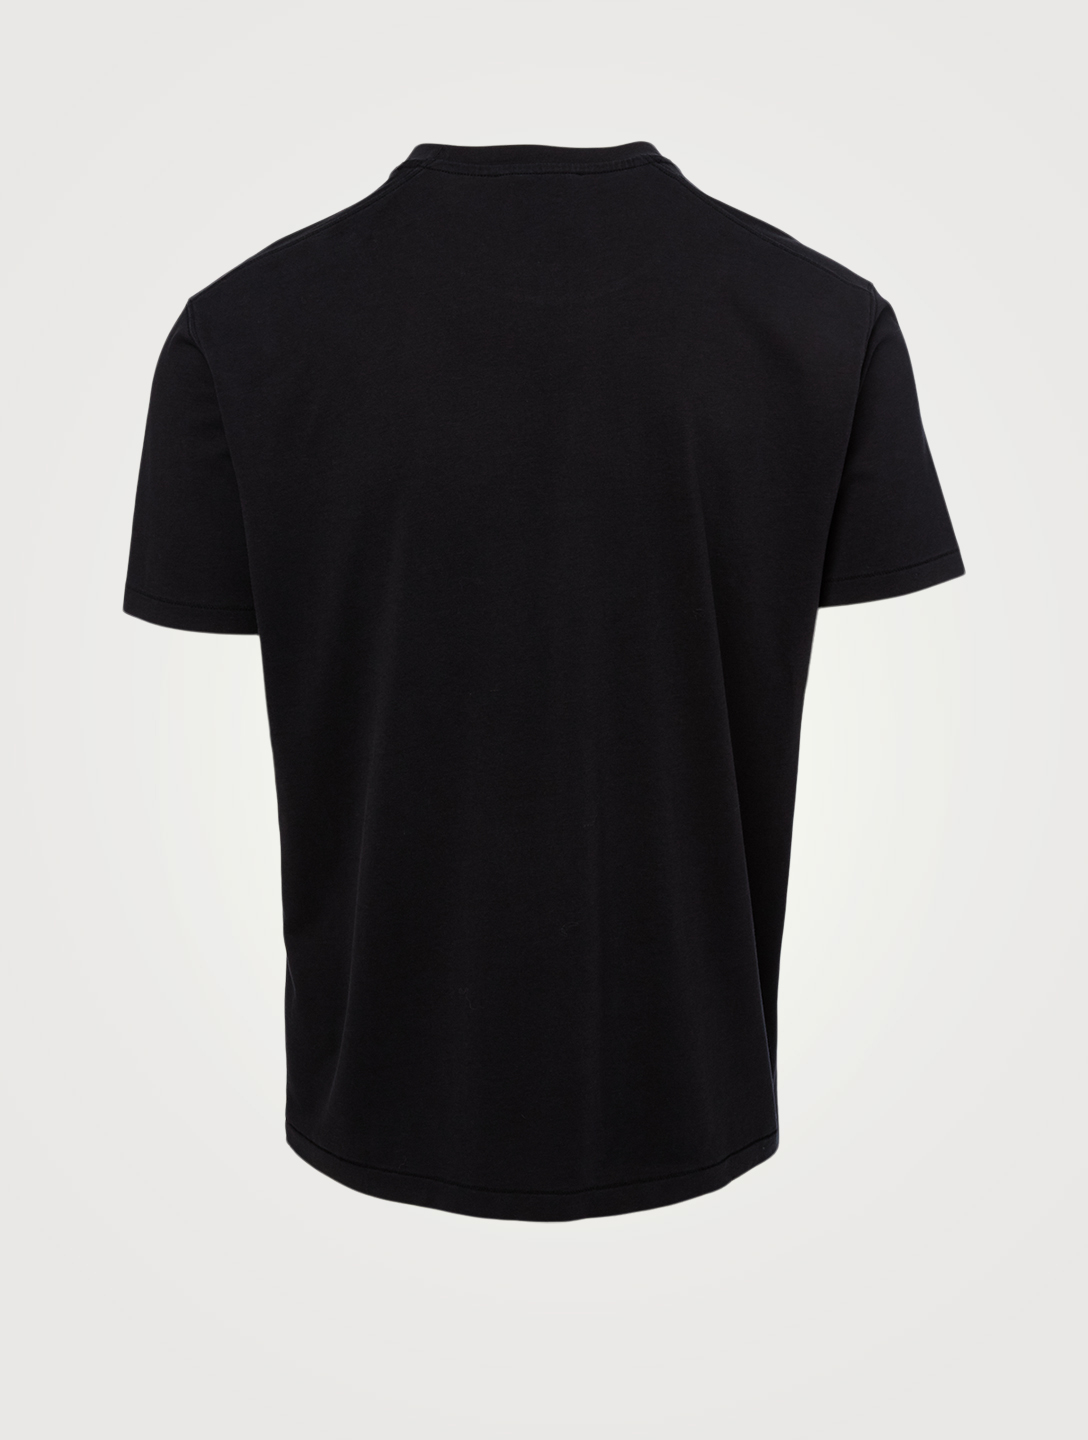 TOM FORD Crewneck T-Shirt Men's Black